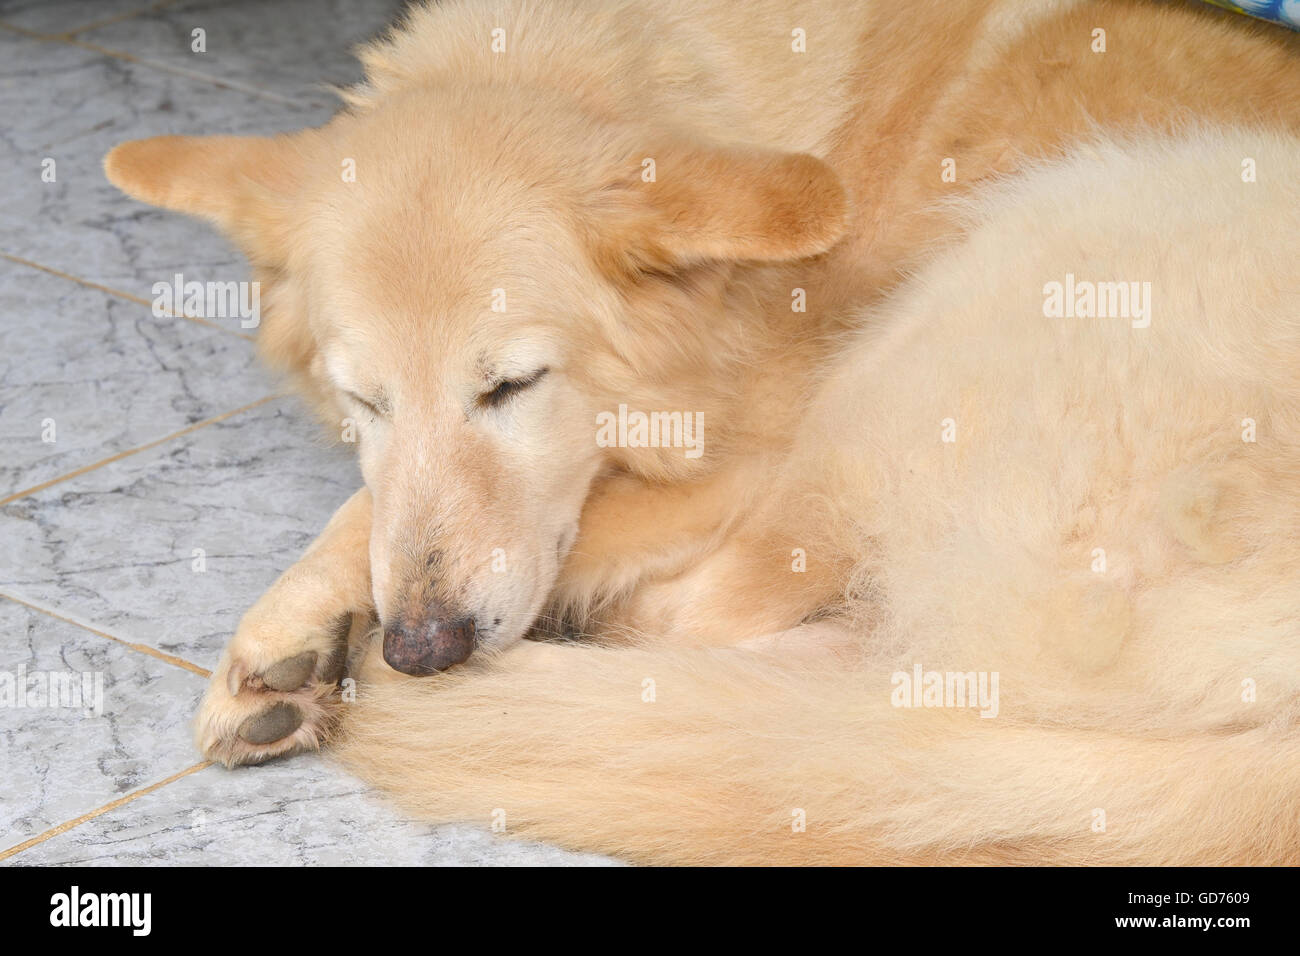 guard sleeping stockfotos guard sleeping bilder alamy. Black Bedroom Furniture Sets. Home Design Ideas